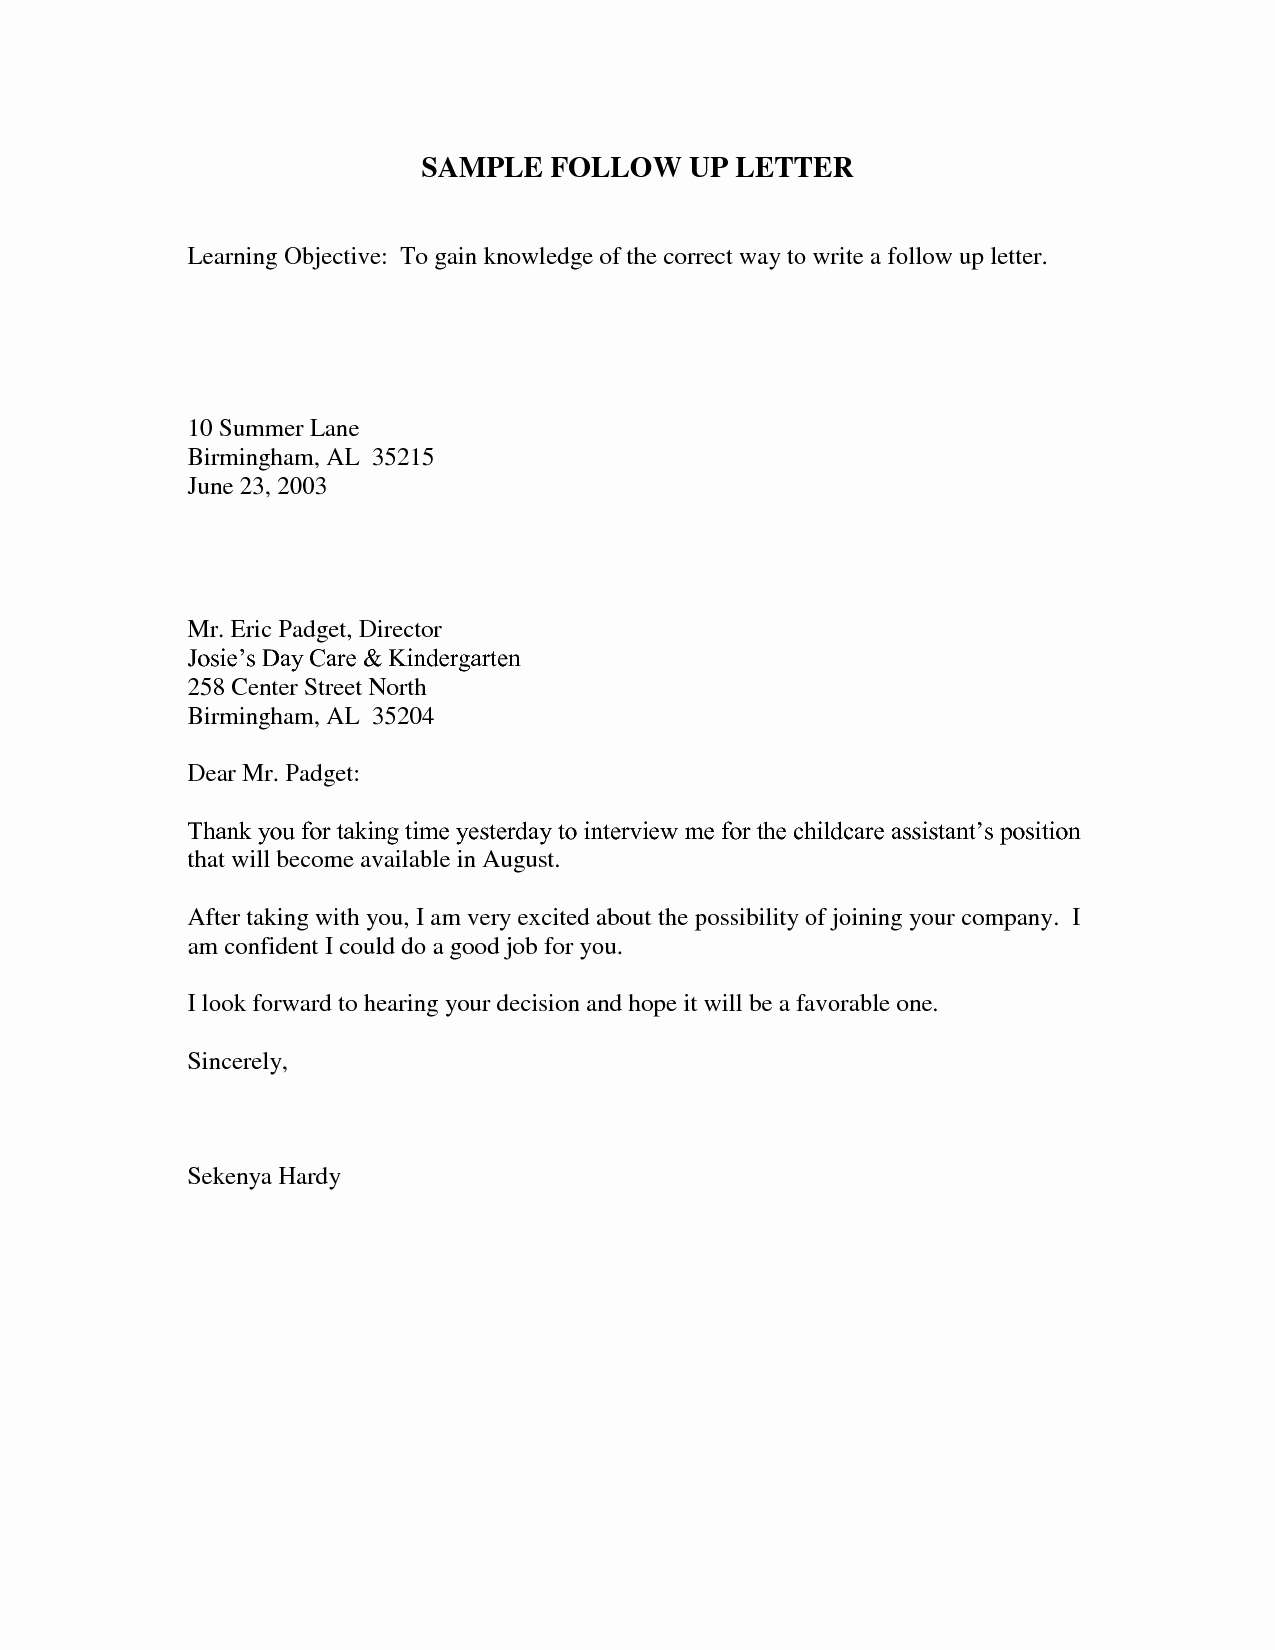 Follow Up Letter Template New Follow Up Email after Interview